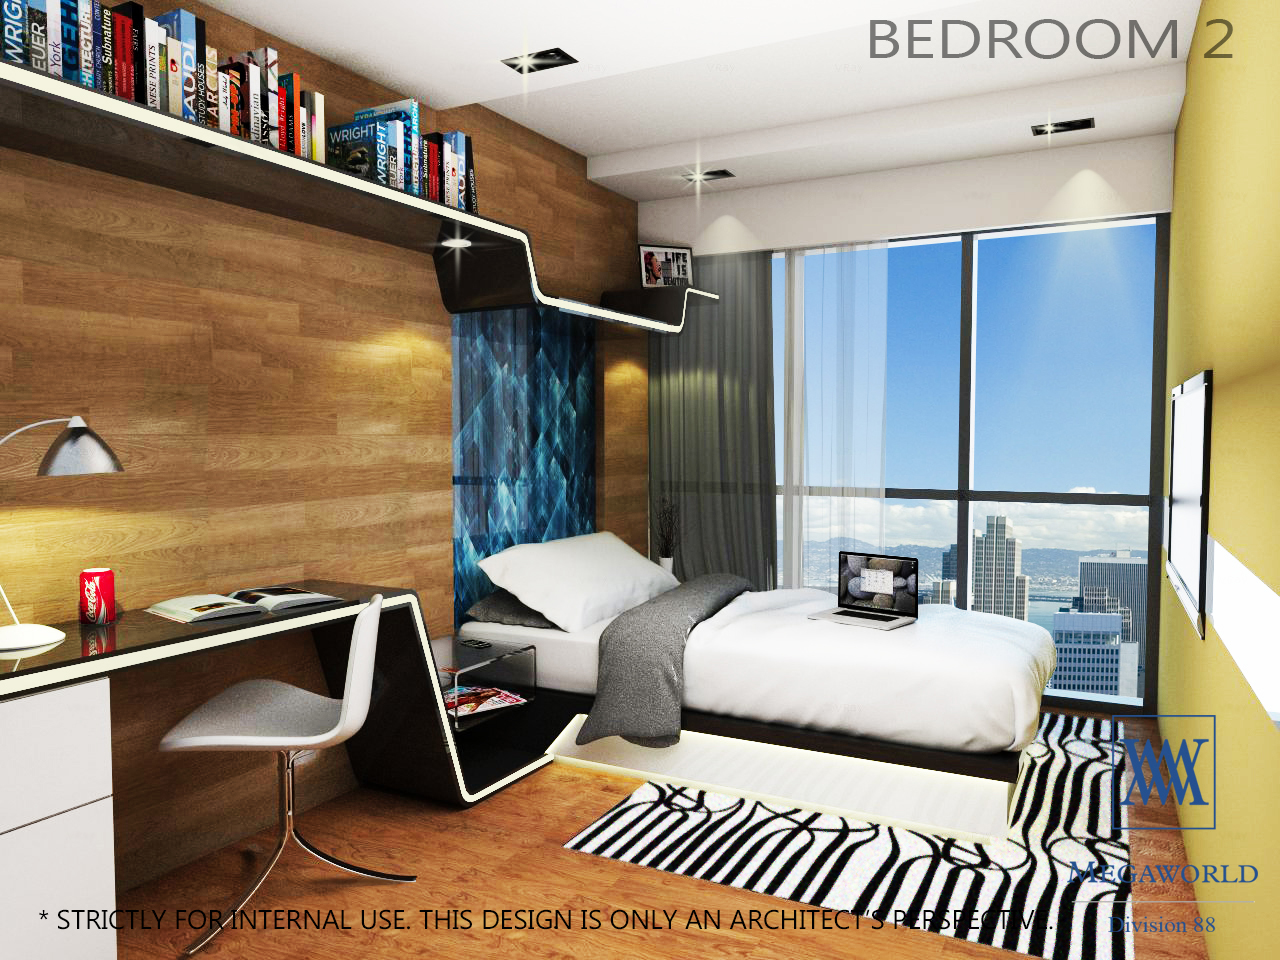 UPTOWN PARKSUITES-1 BEDROOM 2--condos-for-sale-bgc-fort-bonifacio-global-city-taguig